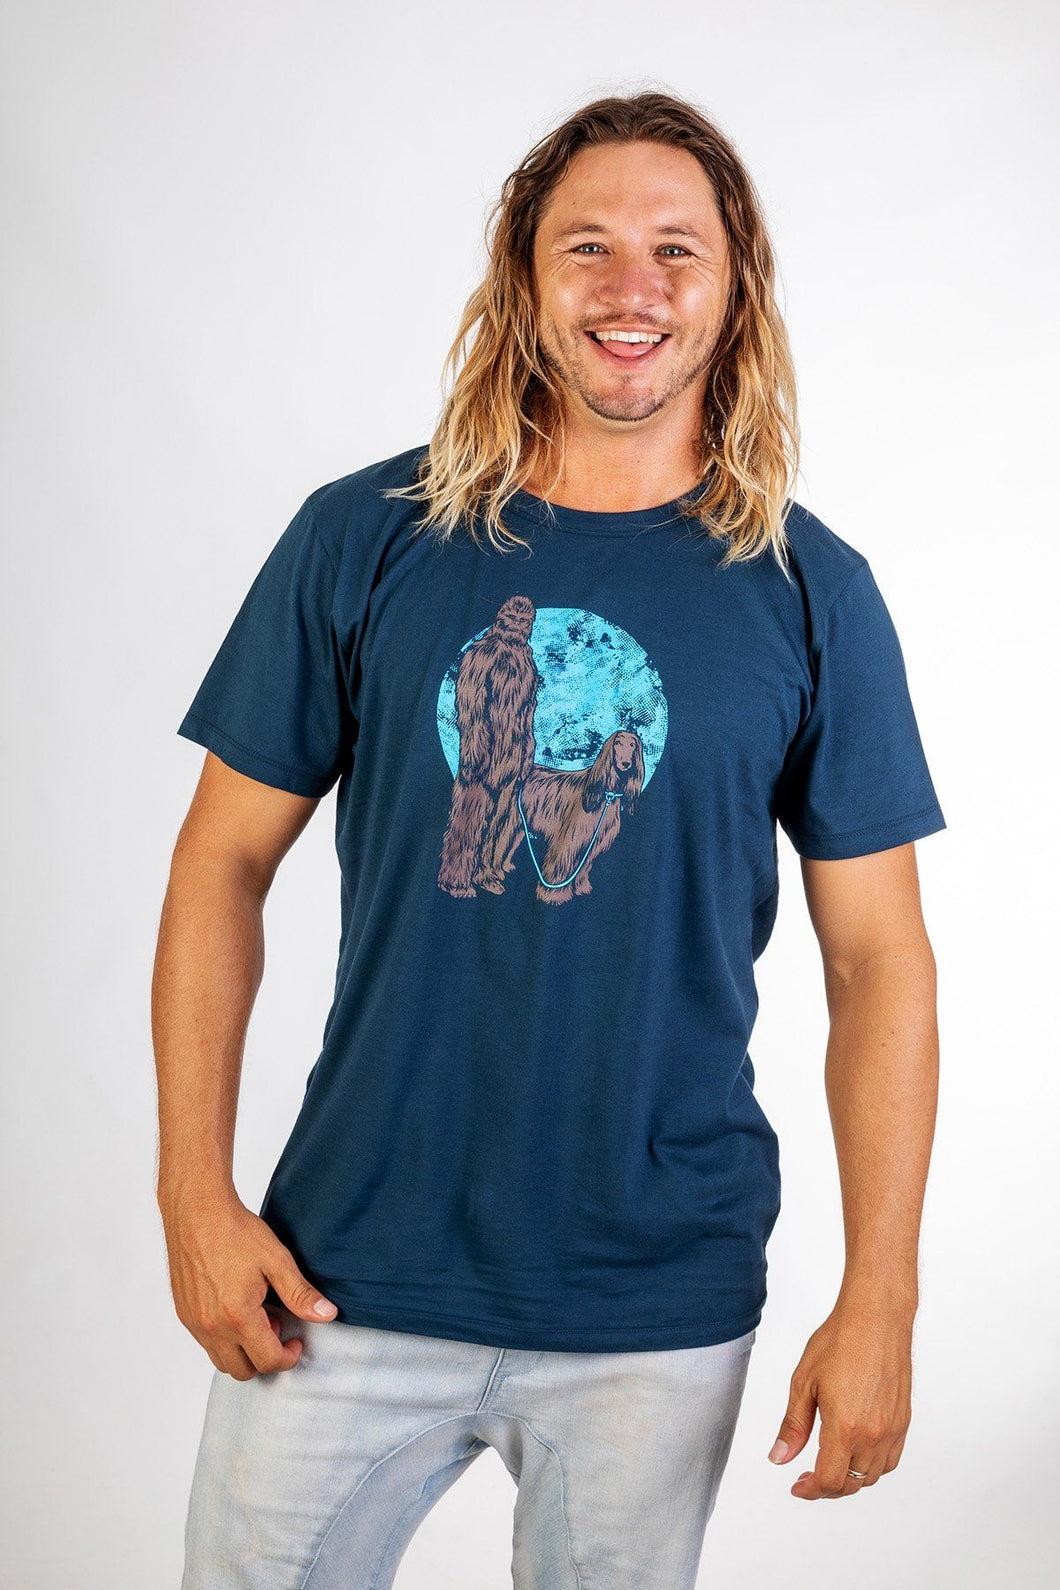 Skumi Mens T shirt Chewbacca Navy - Global Free Style